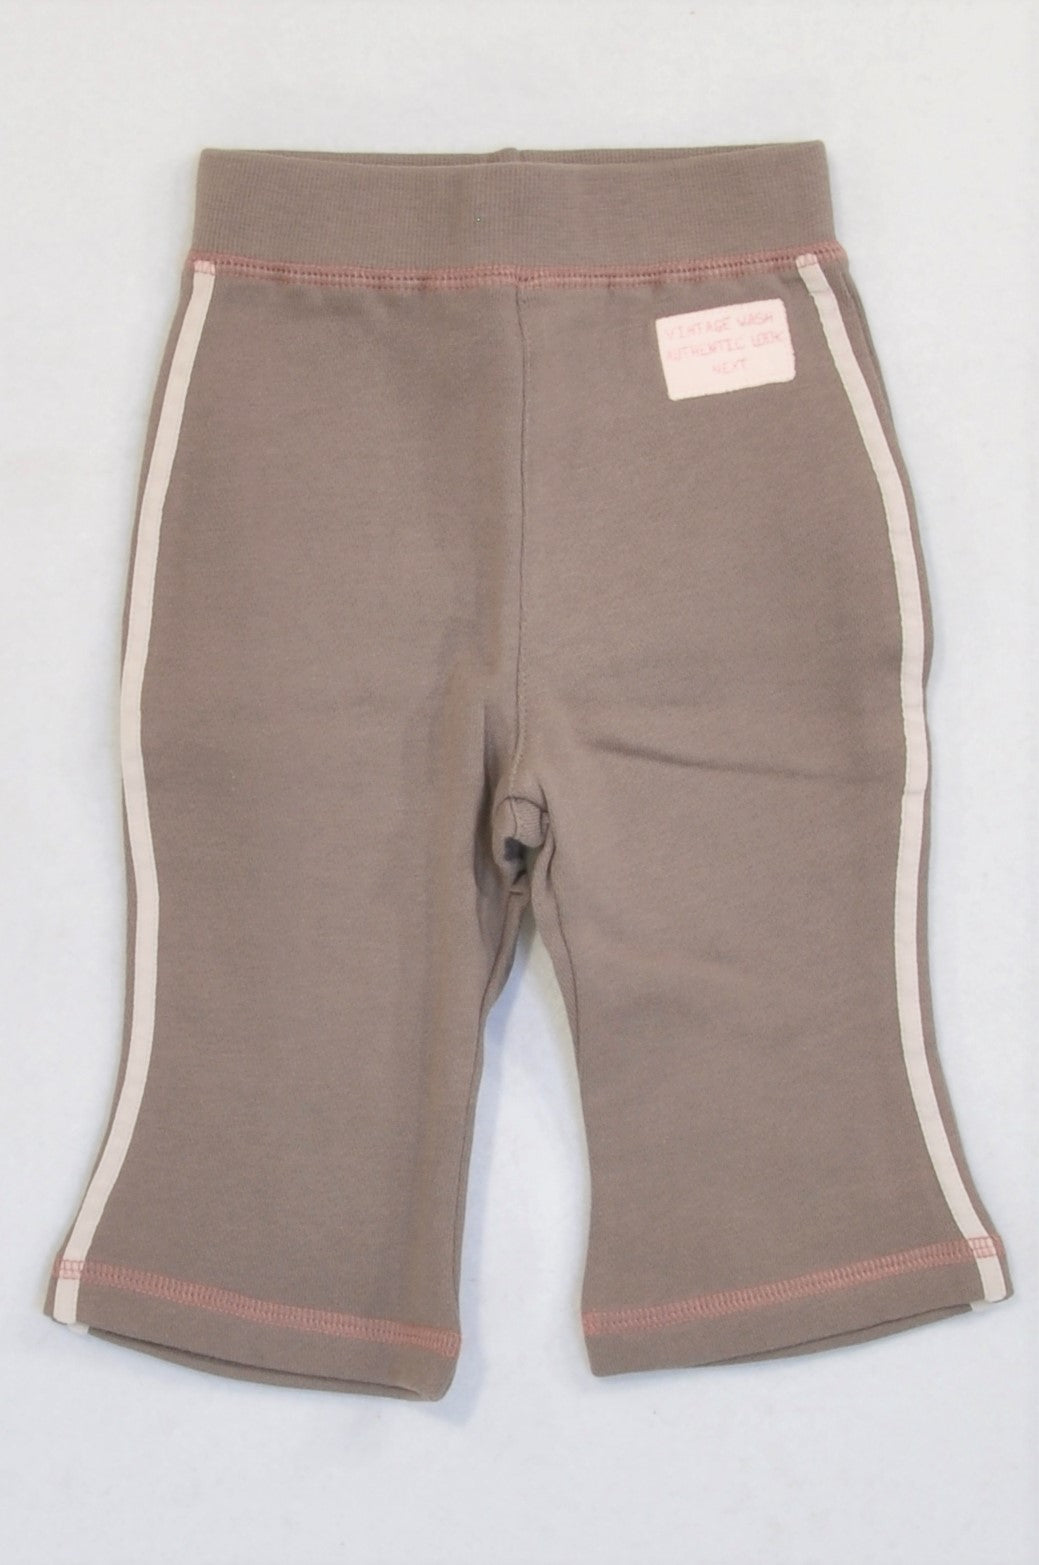 New Next Brown & Pink Trim CUTE Pants Girls 3-6 months